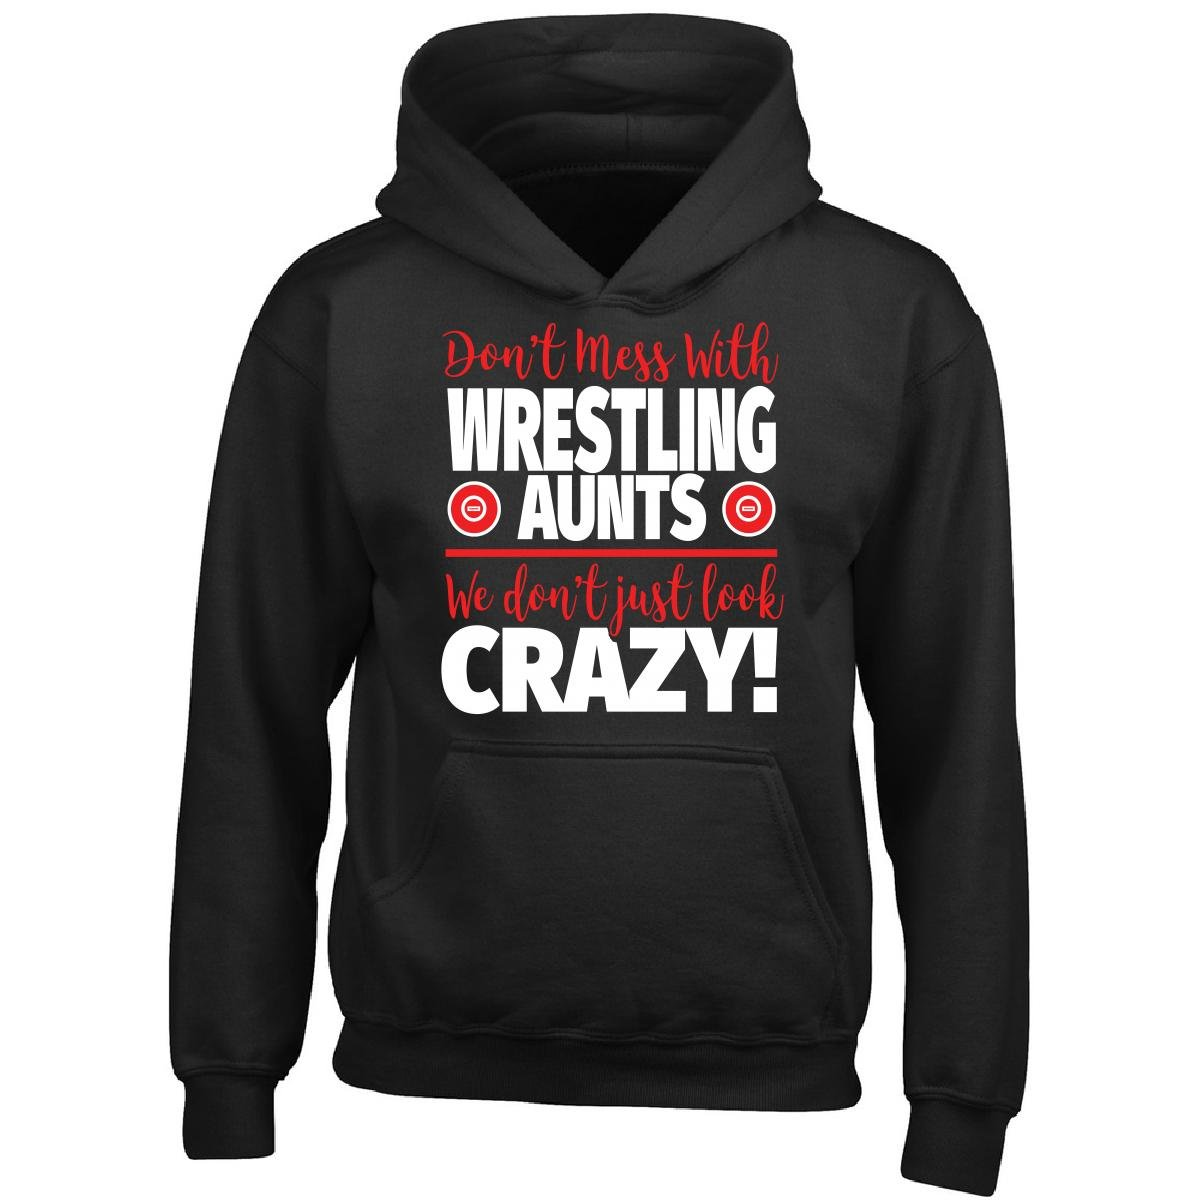 Eternally Gifted Crazy Wrestling Family - Don't Mess With Wrestling Aunts - Boy Boys Hoodie